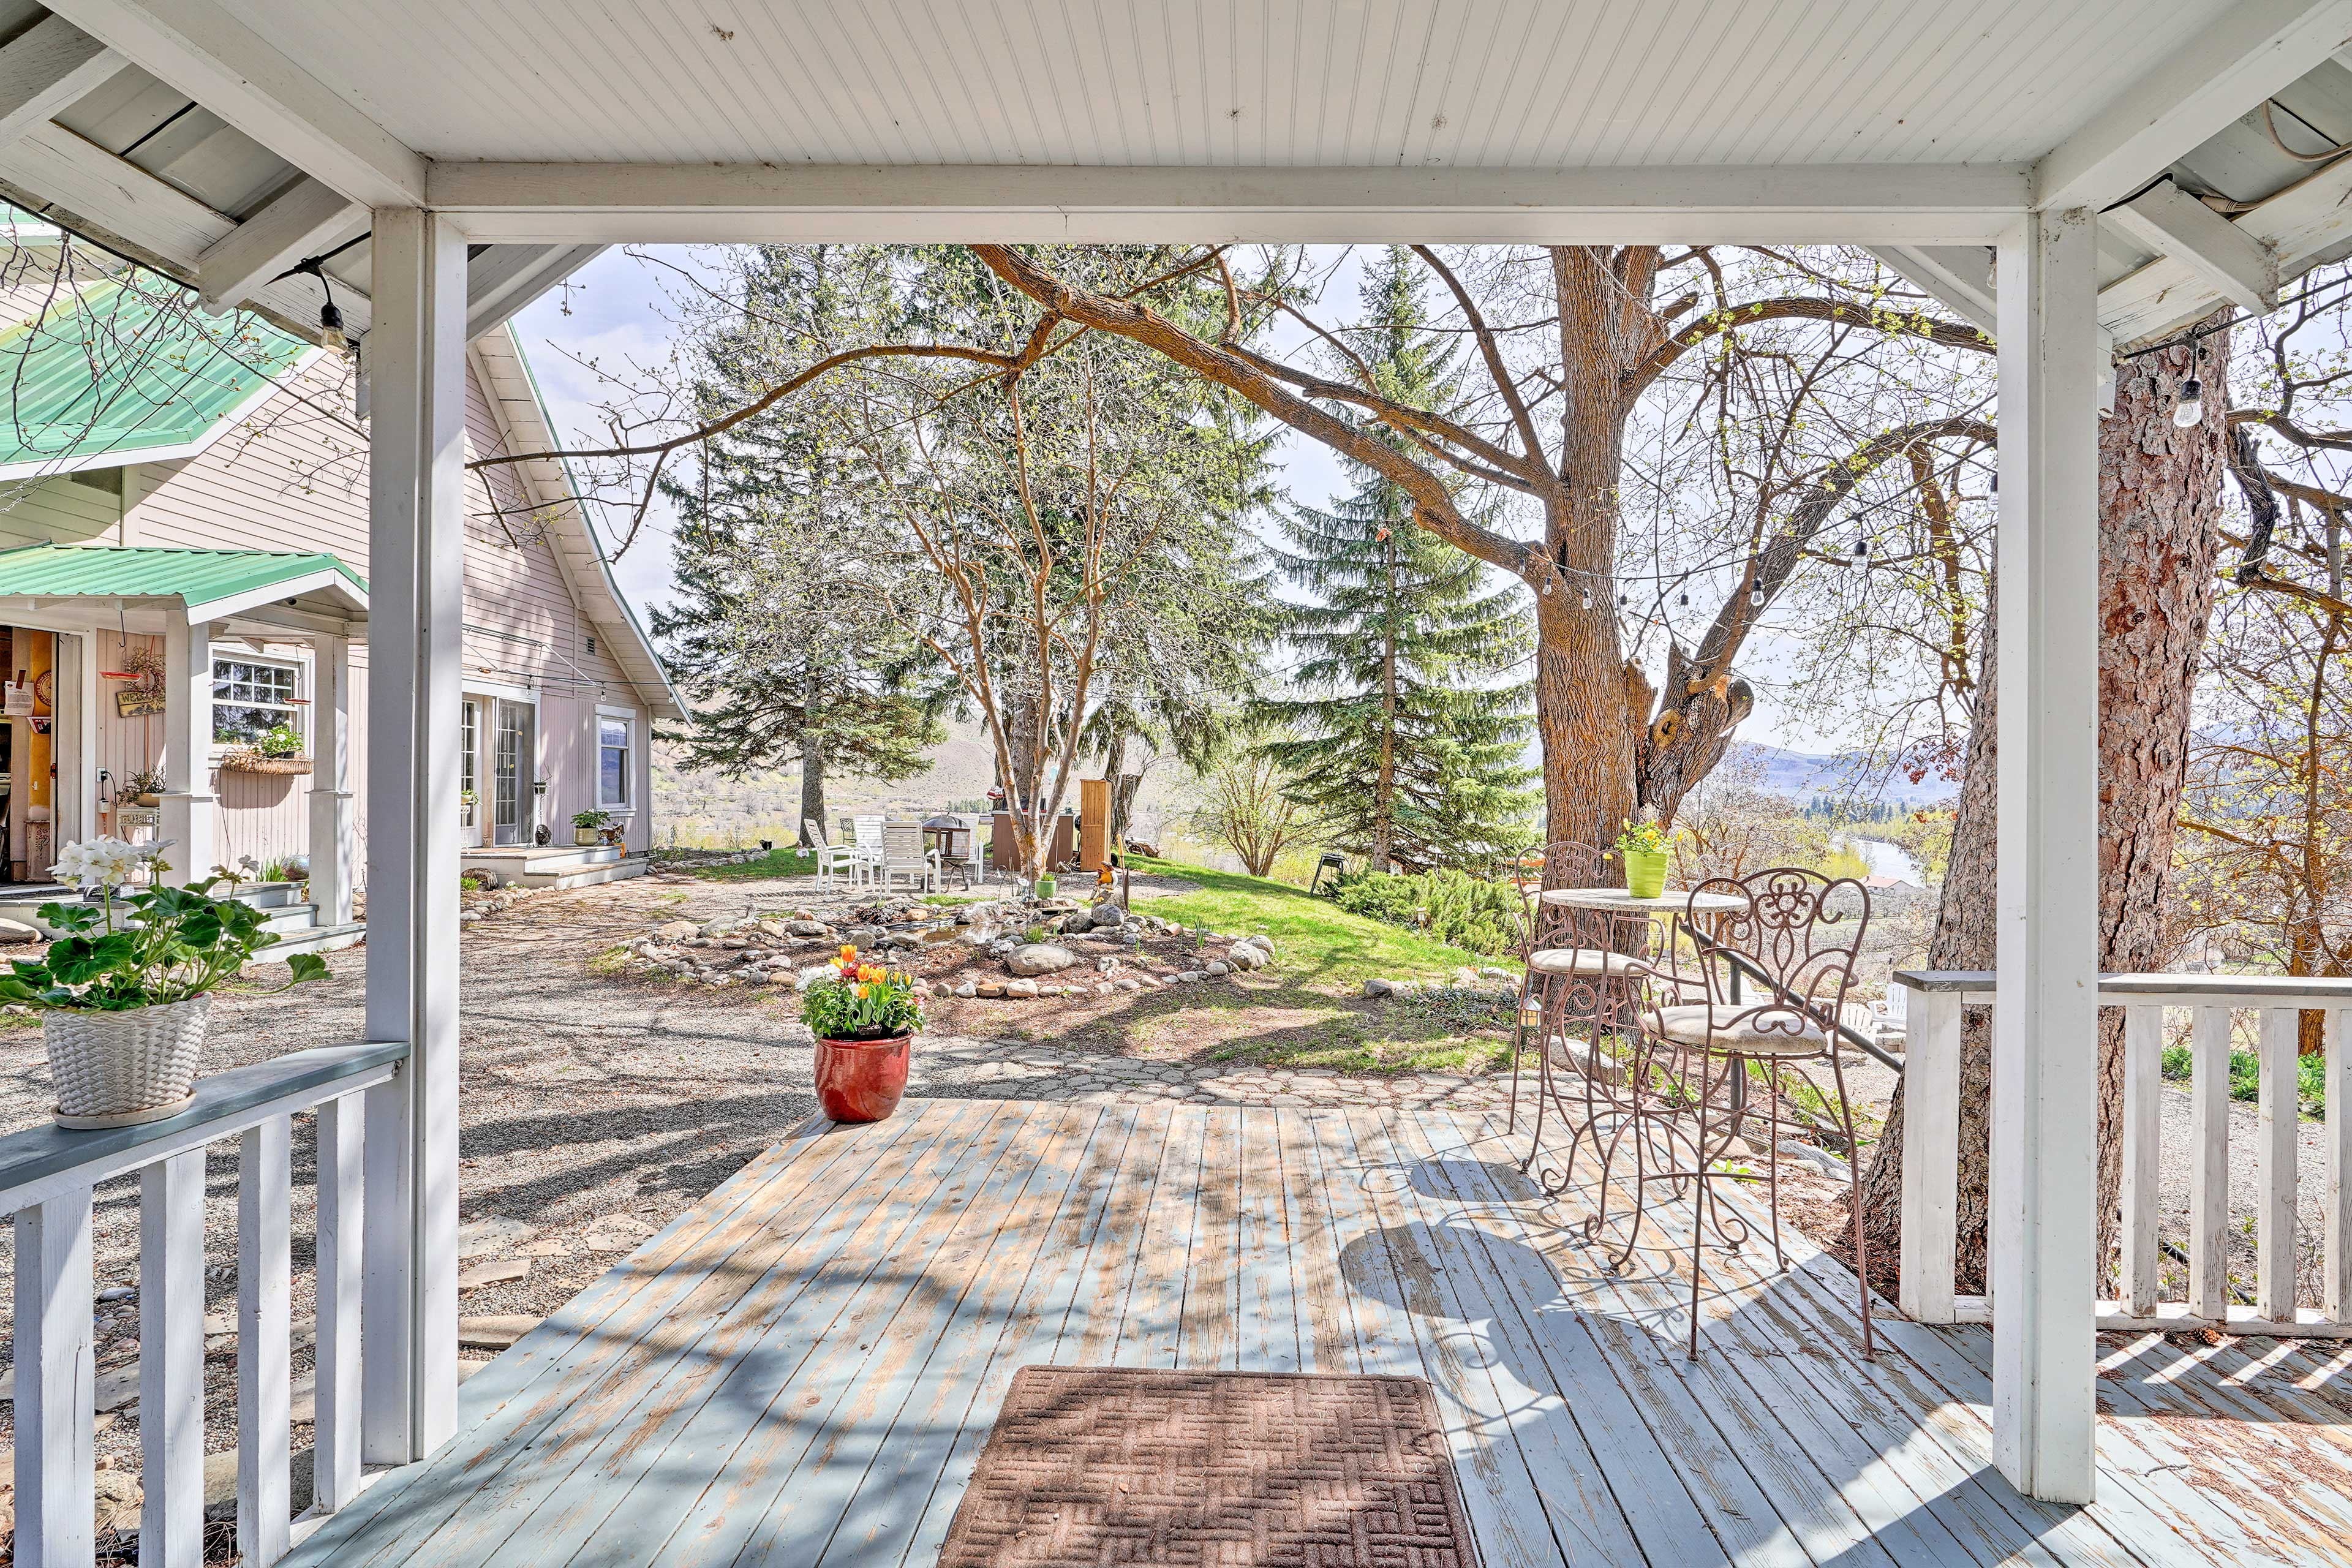 Soak in the mountain views from the porch of this 1-bedroom, 1-bath cottage.